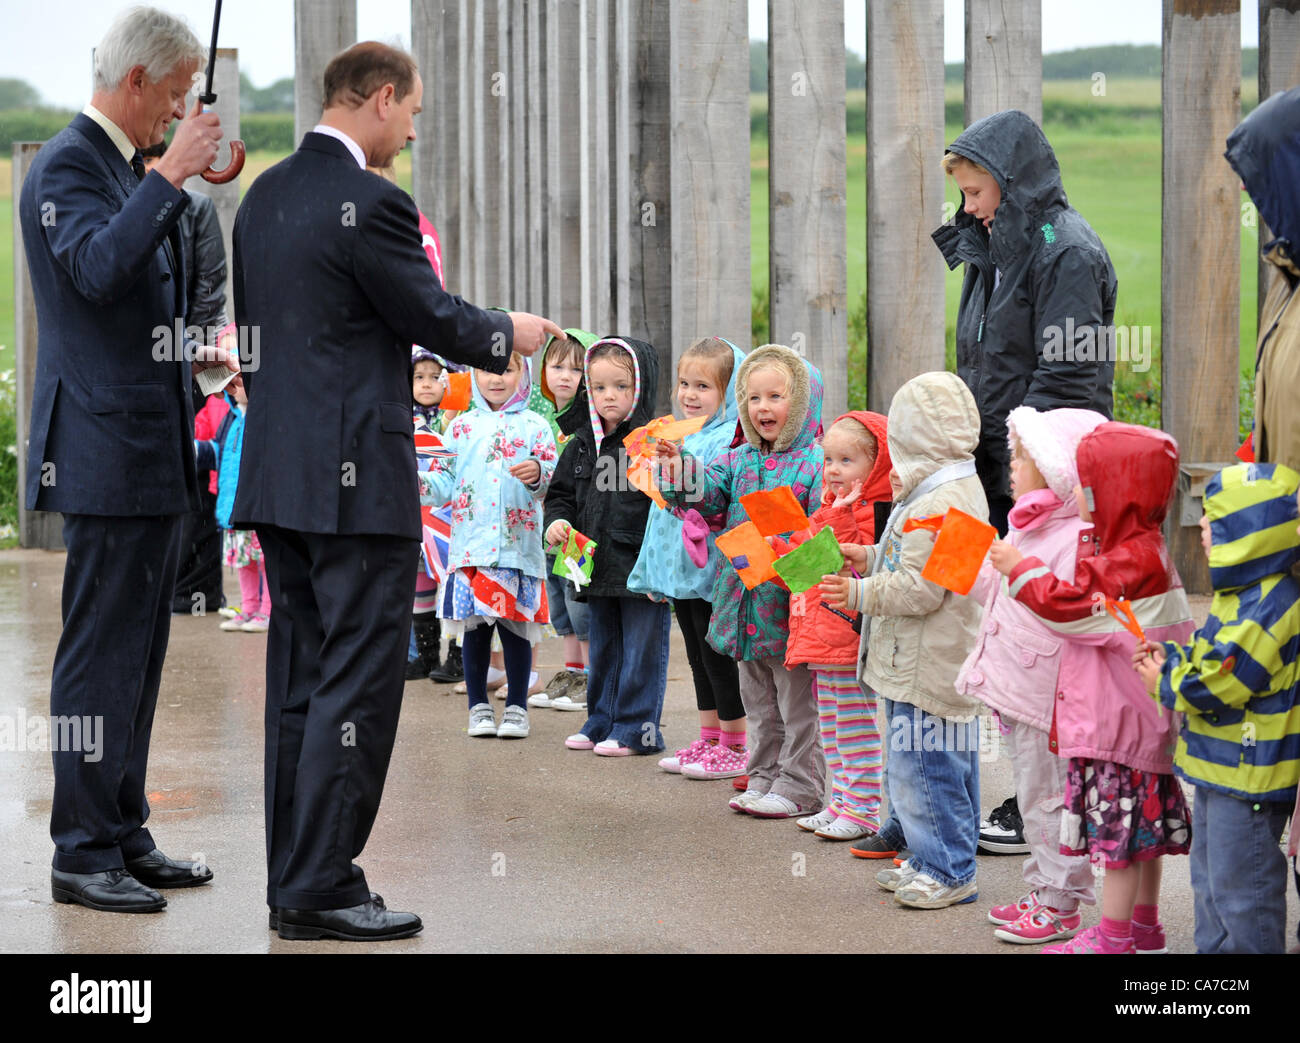 Prince Edward, Earl of Wessex, officially opens the new Budmouth College at Weymouth, Dorset, Britain. Meeting a - Stock Image